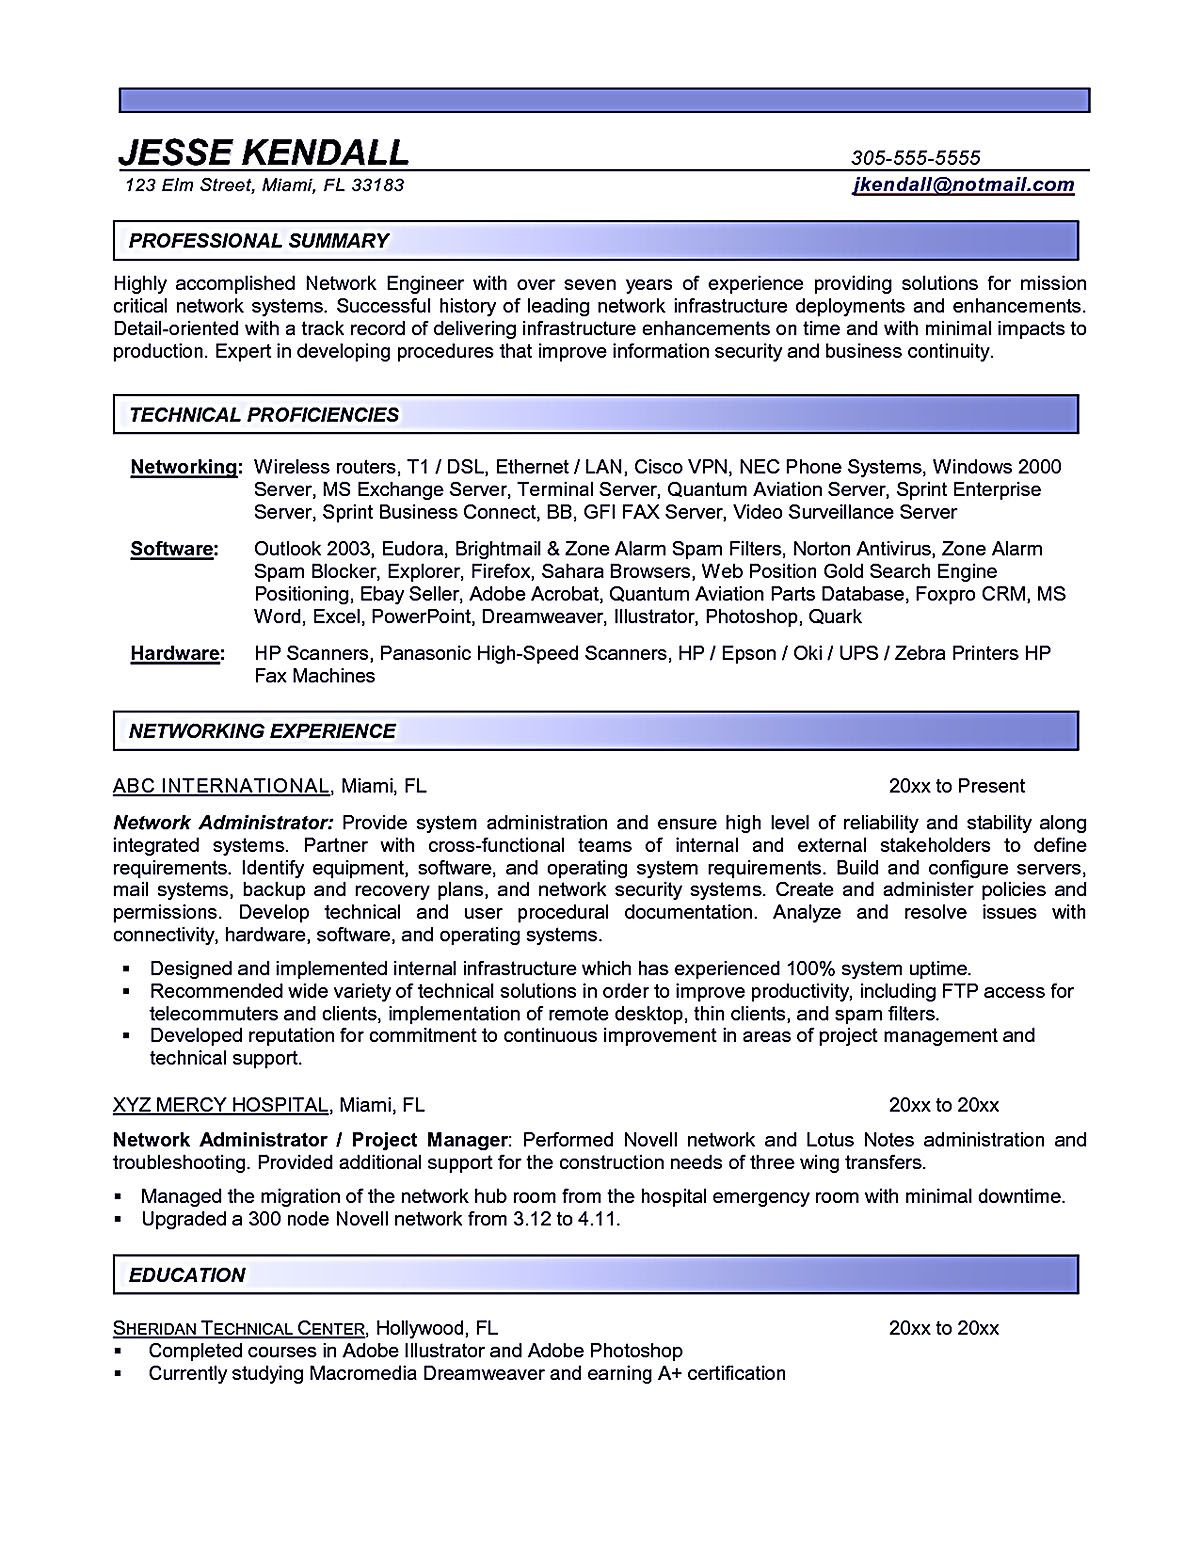 Account Receivable Resume Account Receivable Resume Shows Both Technical And Interpersonal .